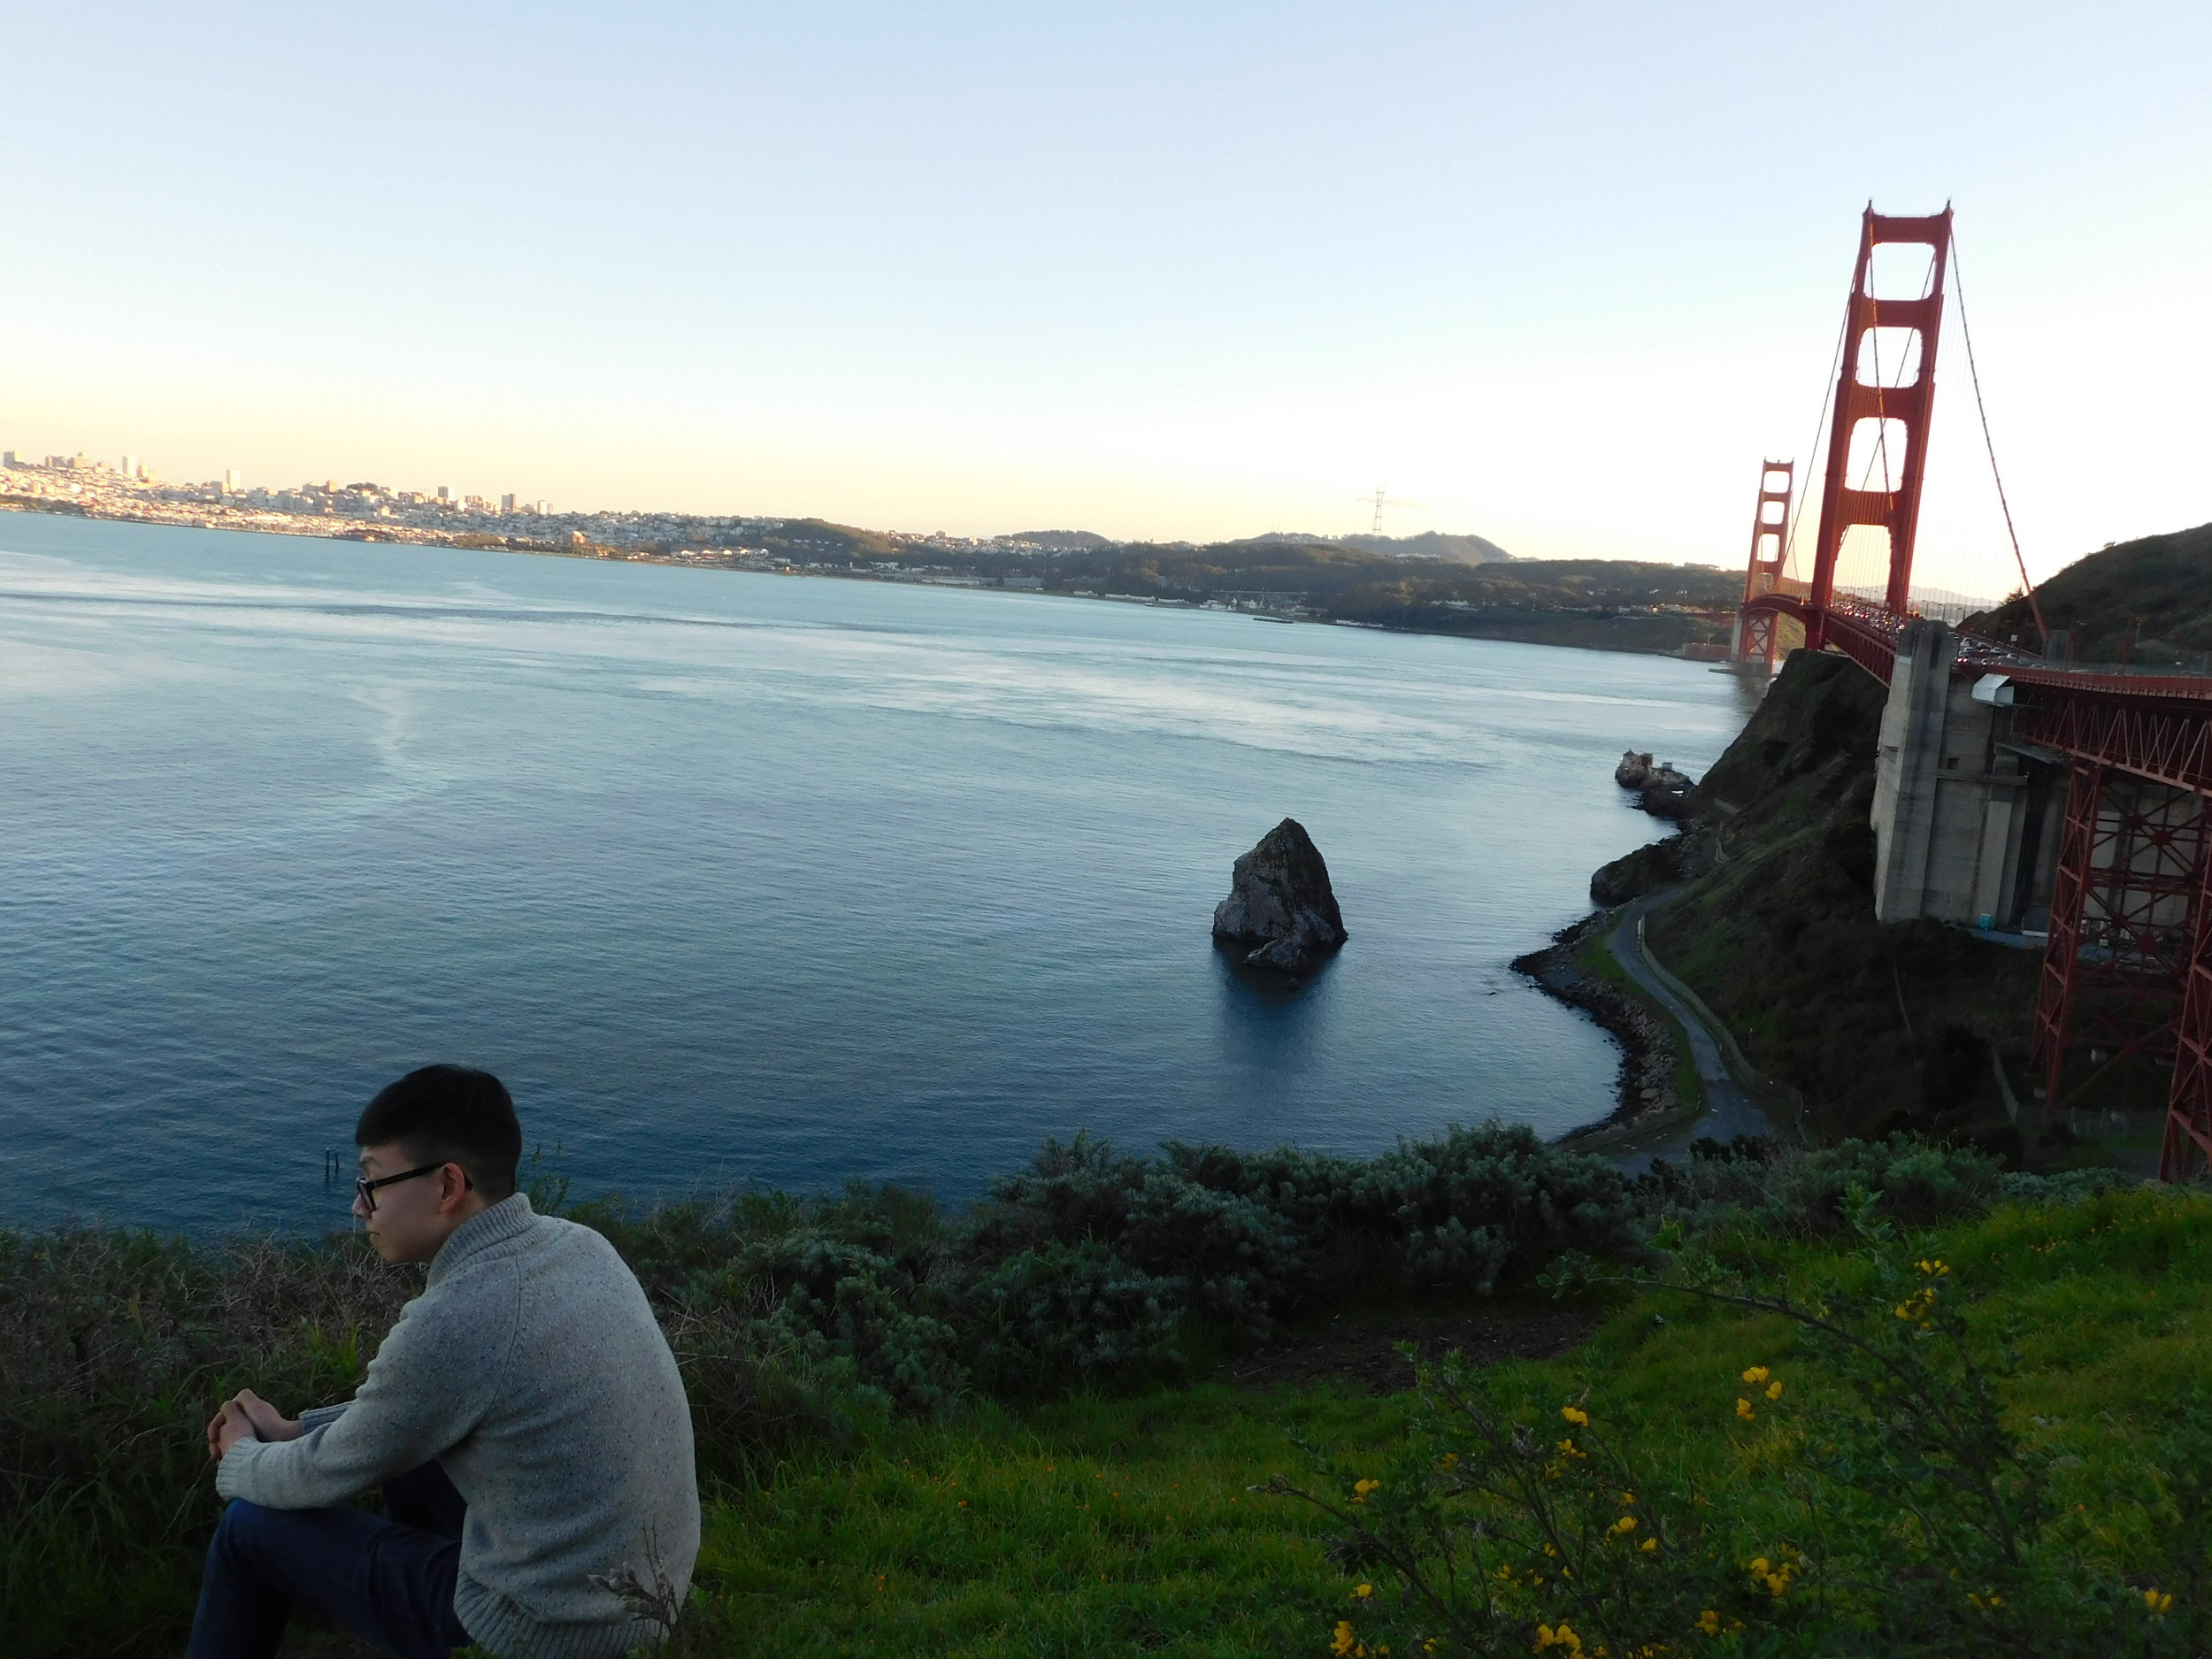 Dustin Zhao admiring the Bay water